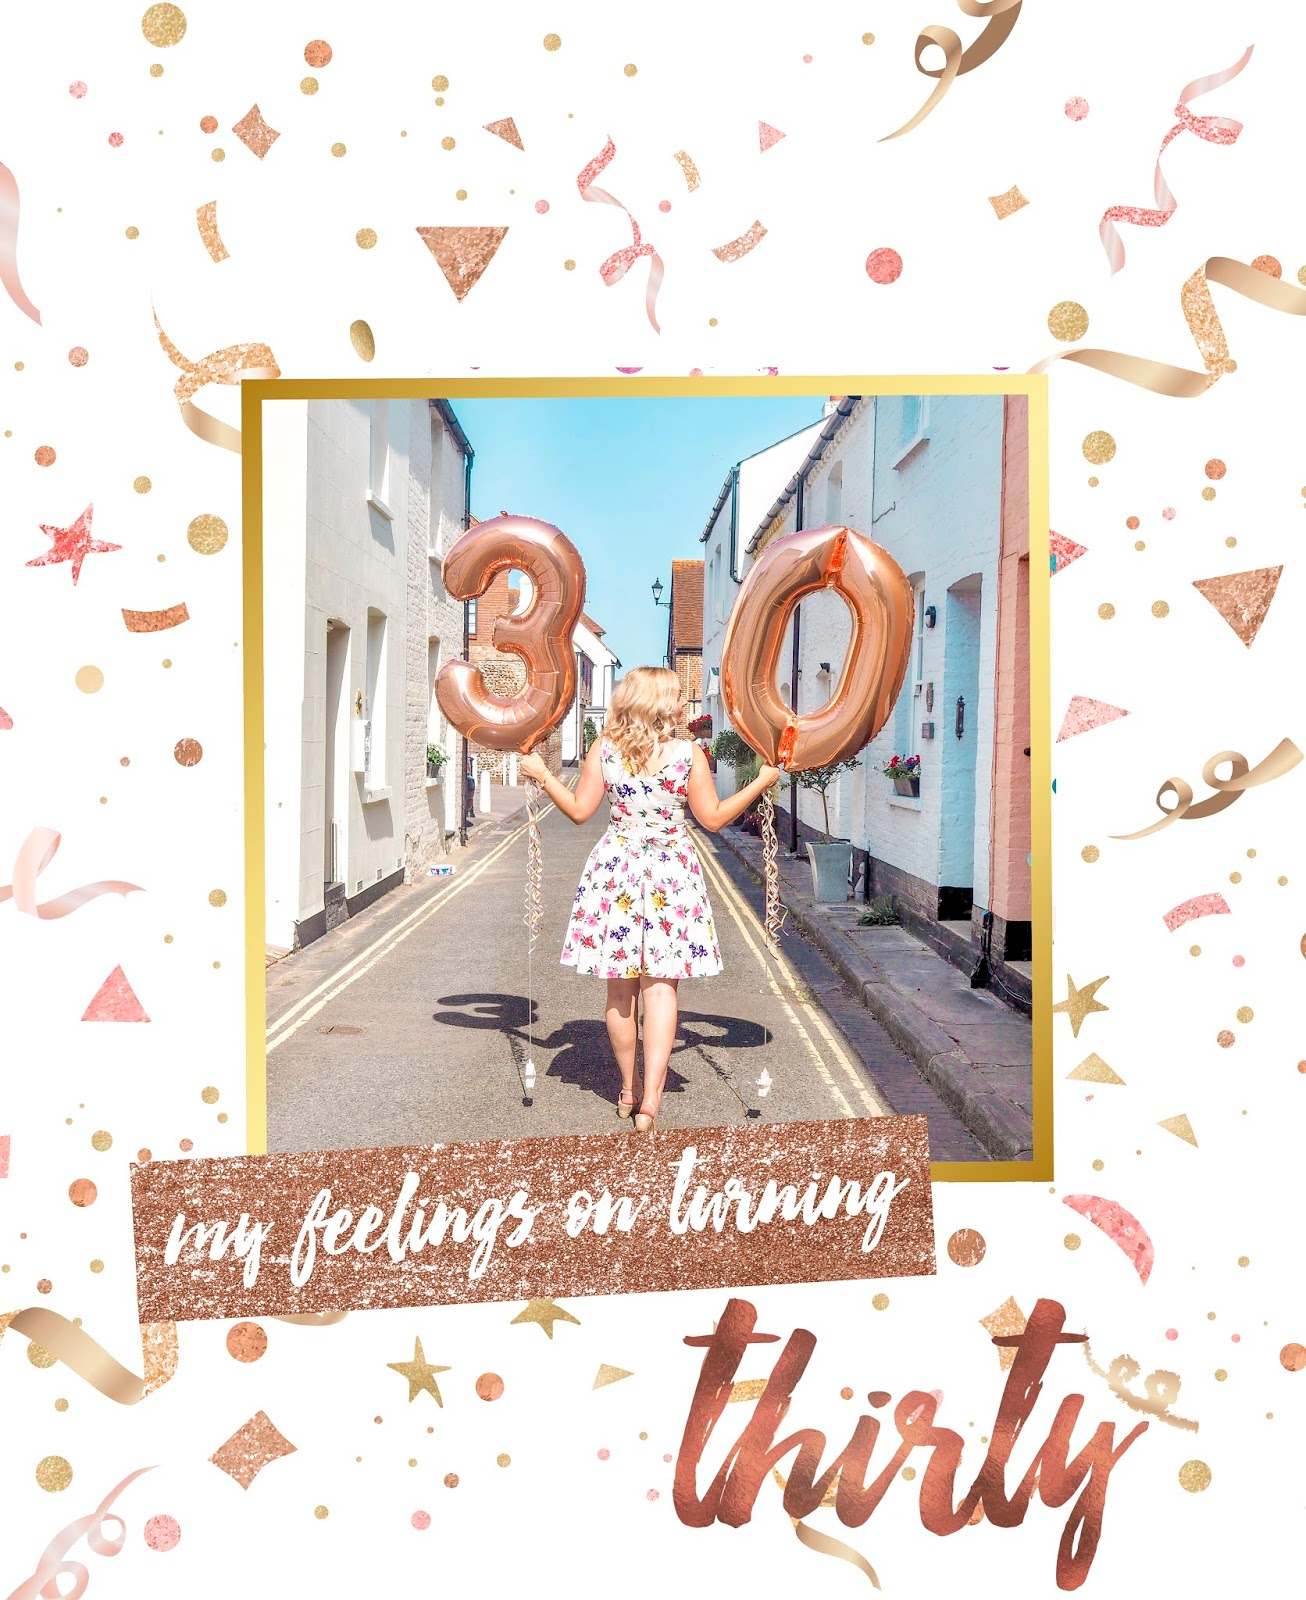 My Feelings On Turning 30, Katie Kirk Loves, UK Blogger, 30th Birthday, 30 Flirty and Thriving, UK Fashion Blogger, UK Lifestyle Blogger, Turning 30 In Style, Over 30s Fashion, 30 and Fabulous, Milestone Birthday, Party Blogger, Vintage Tea Dress, Pin It, Pinterest Worthy